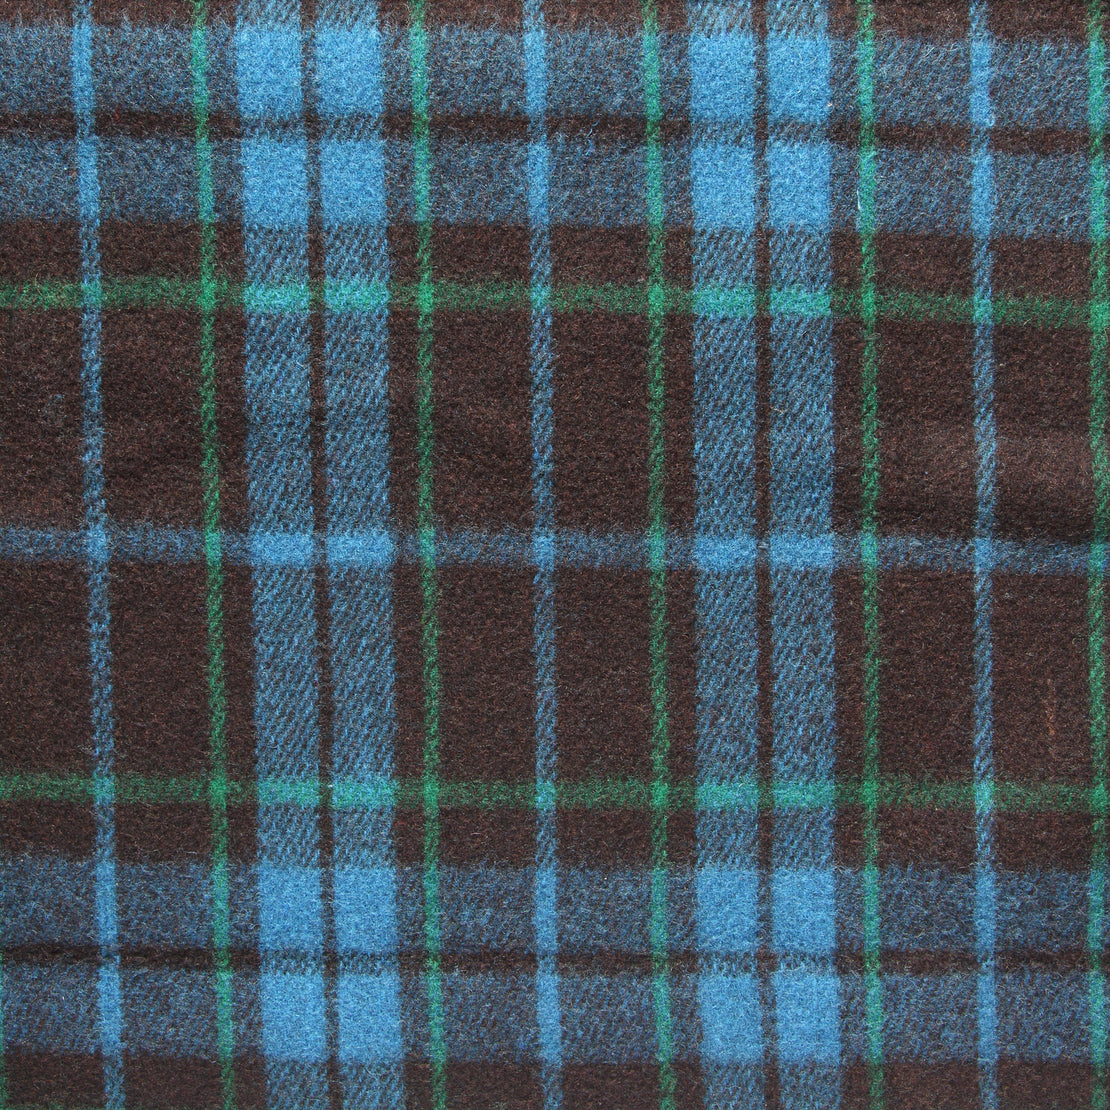 Vintage Indian Wool Plaid Blanket - Black/Green/Blue